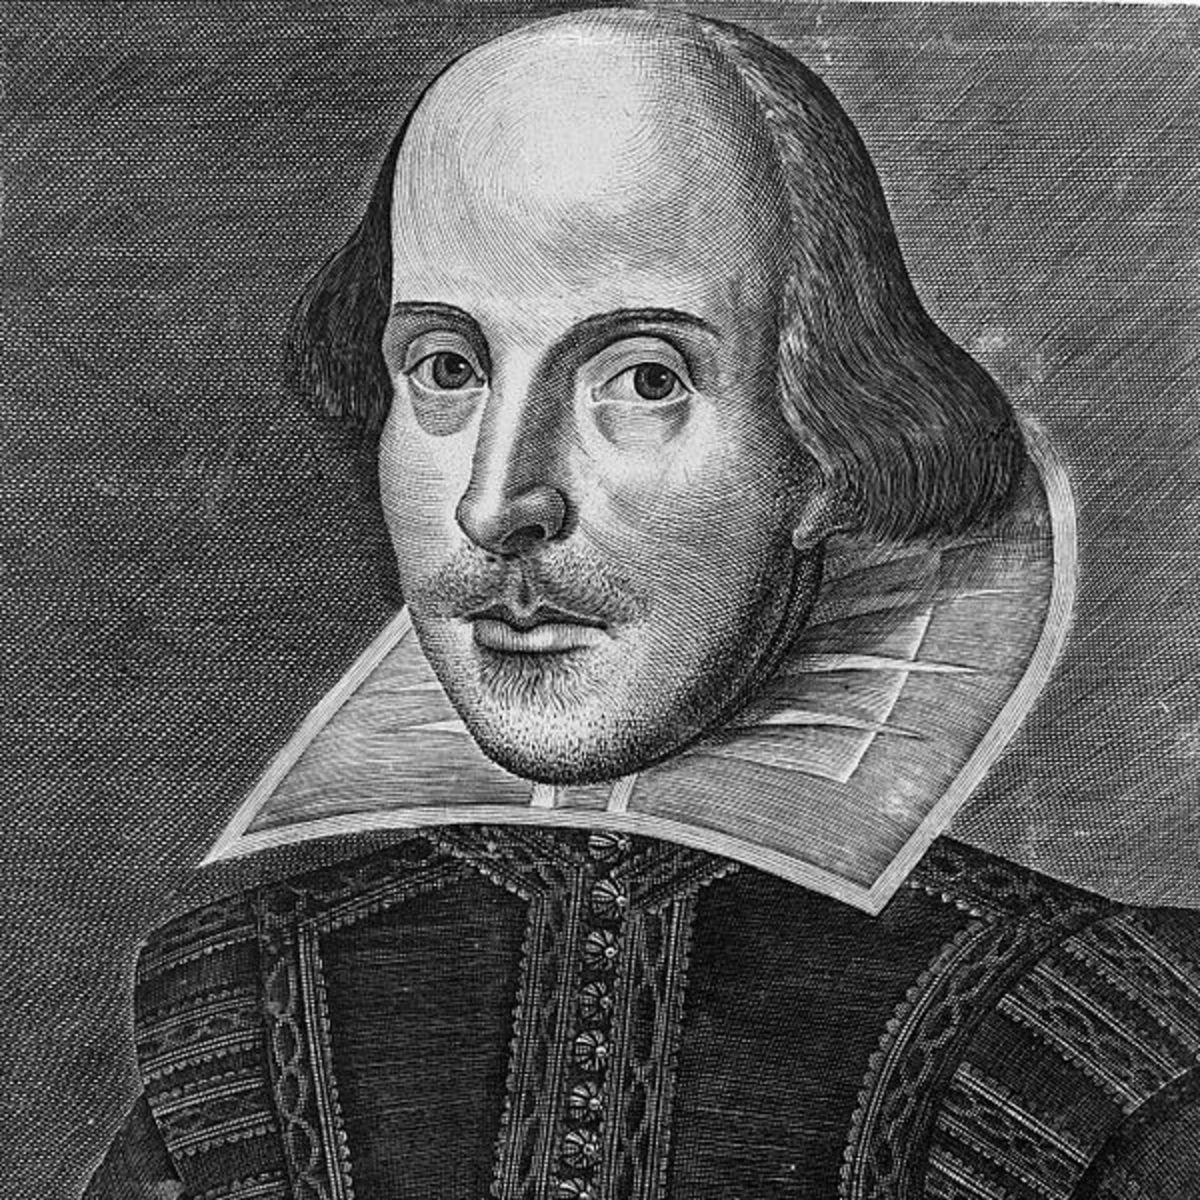 Shakespeare can be another great source for fun cat or dog names.